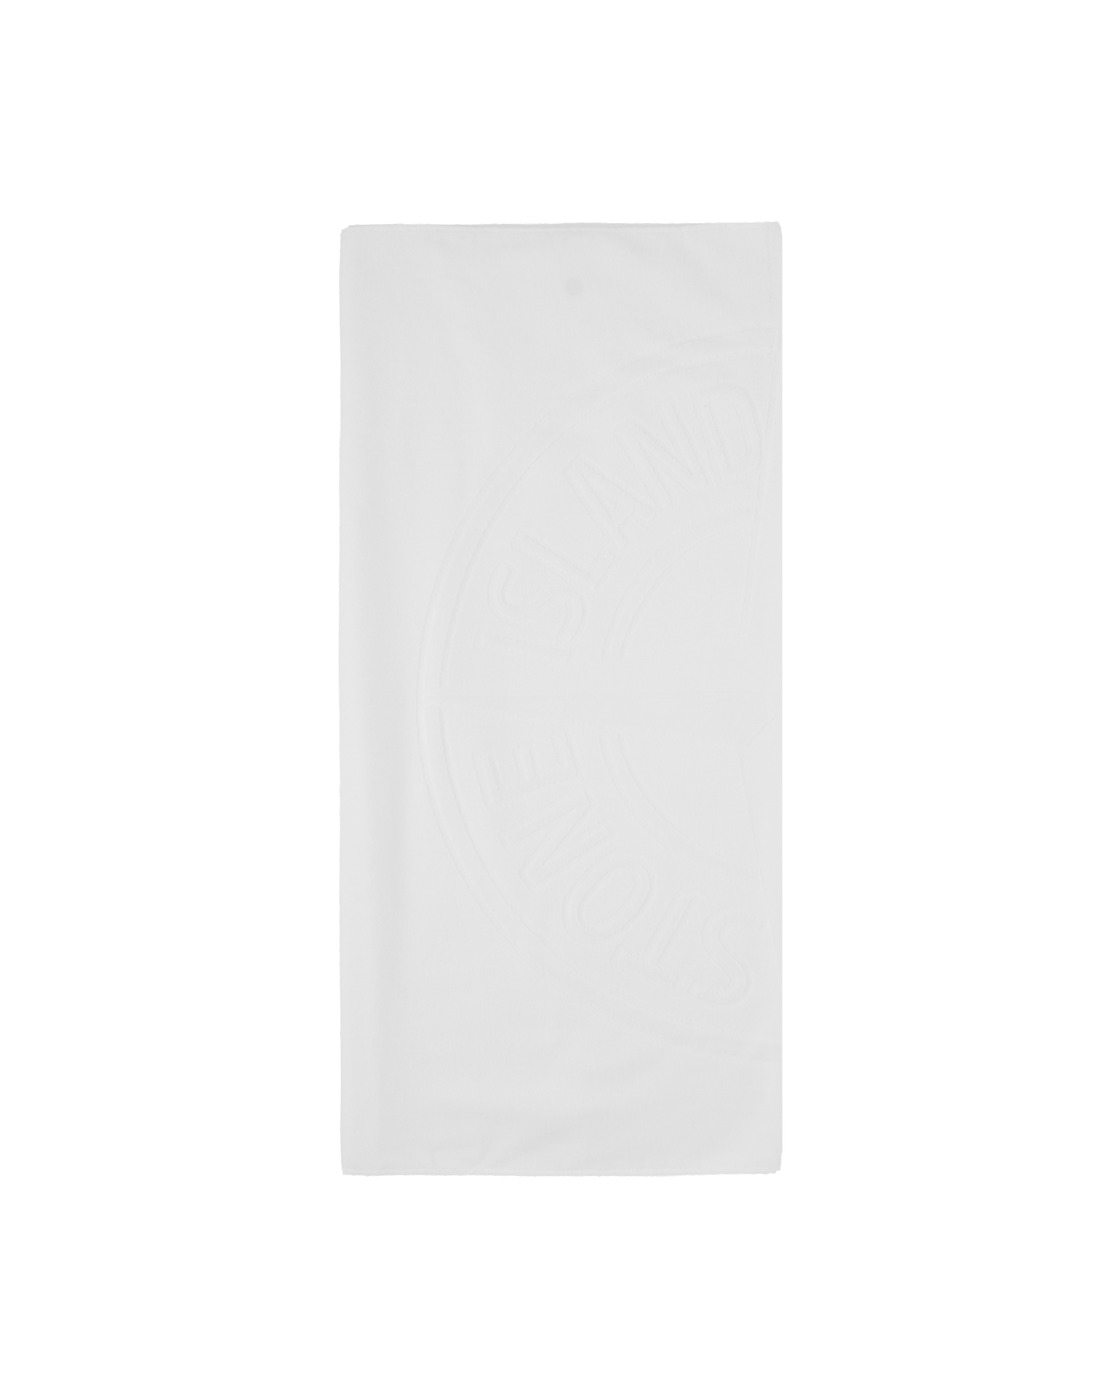 Stone Island Beach Towel White